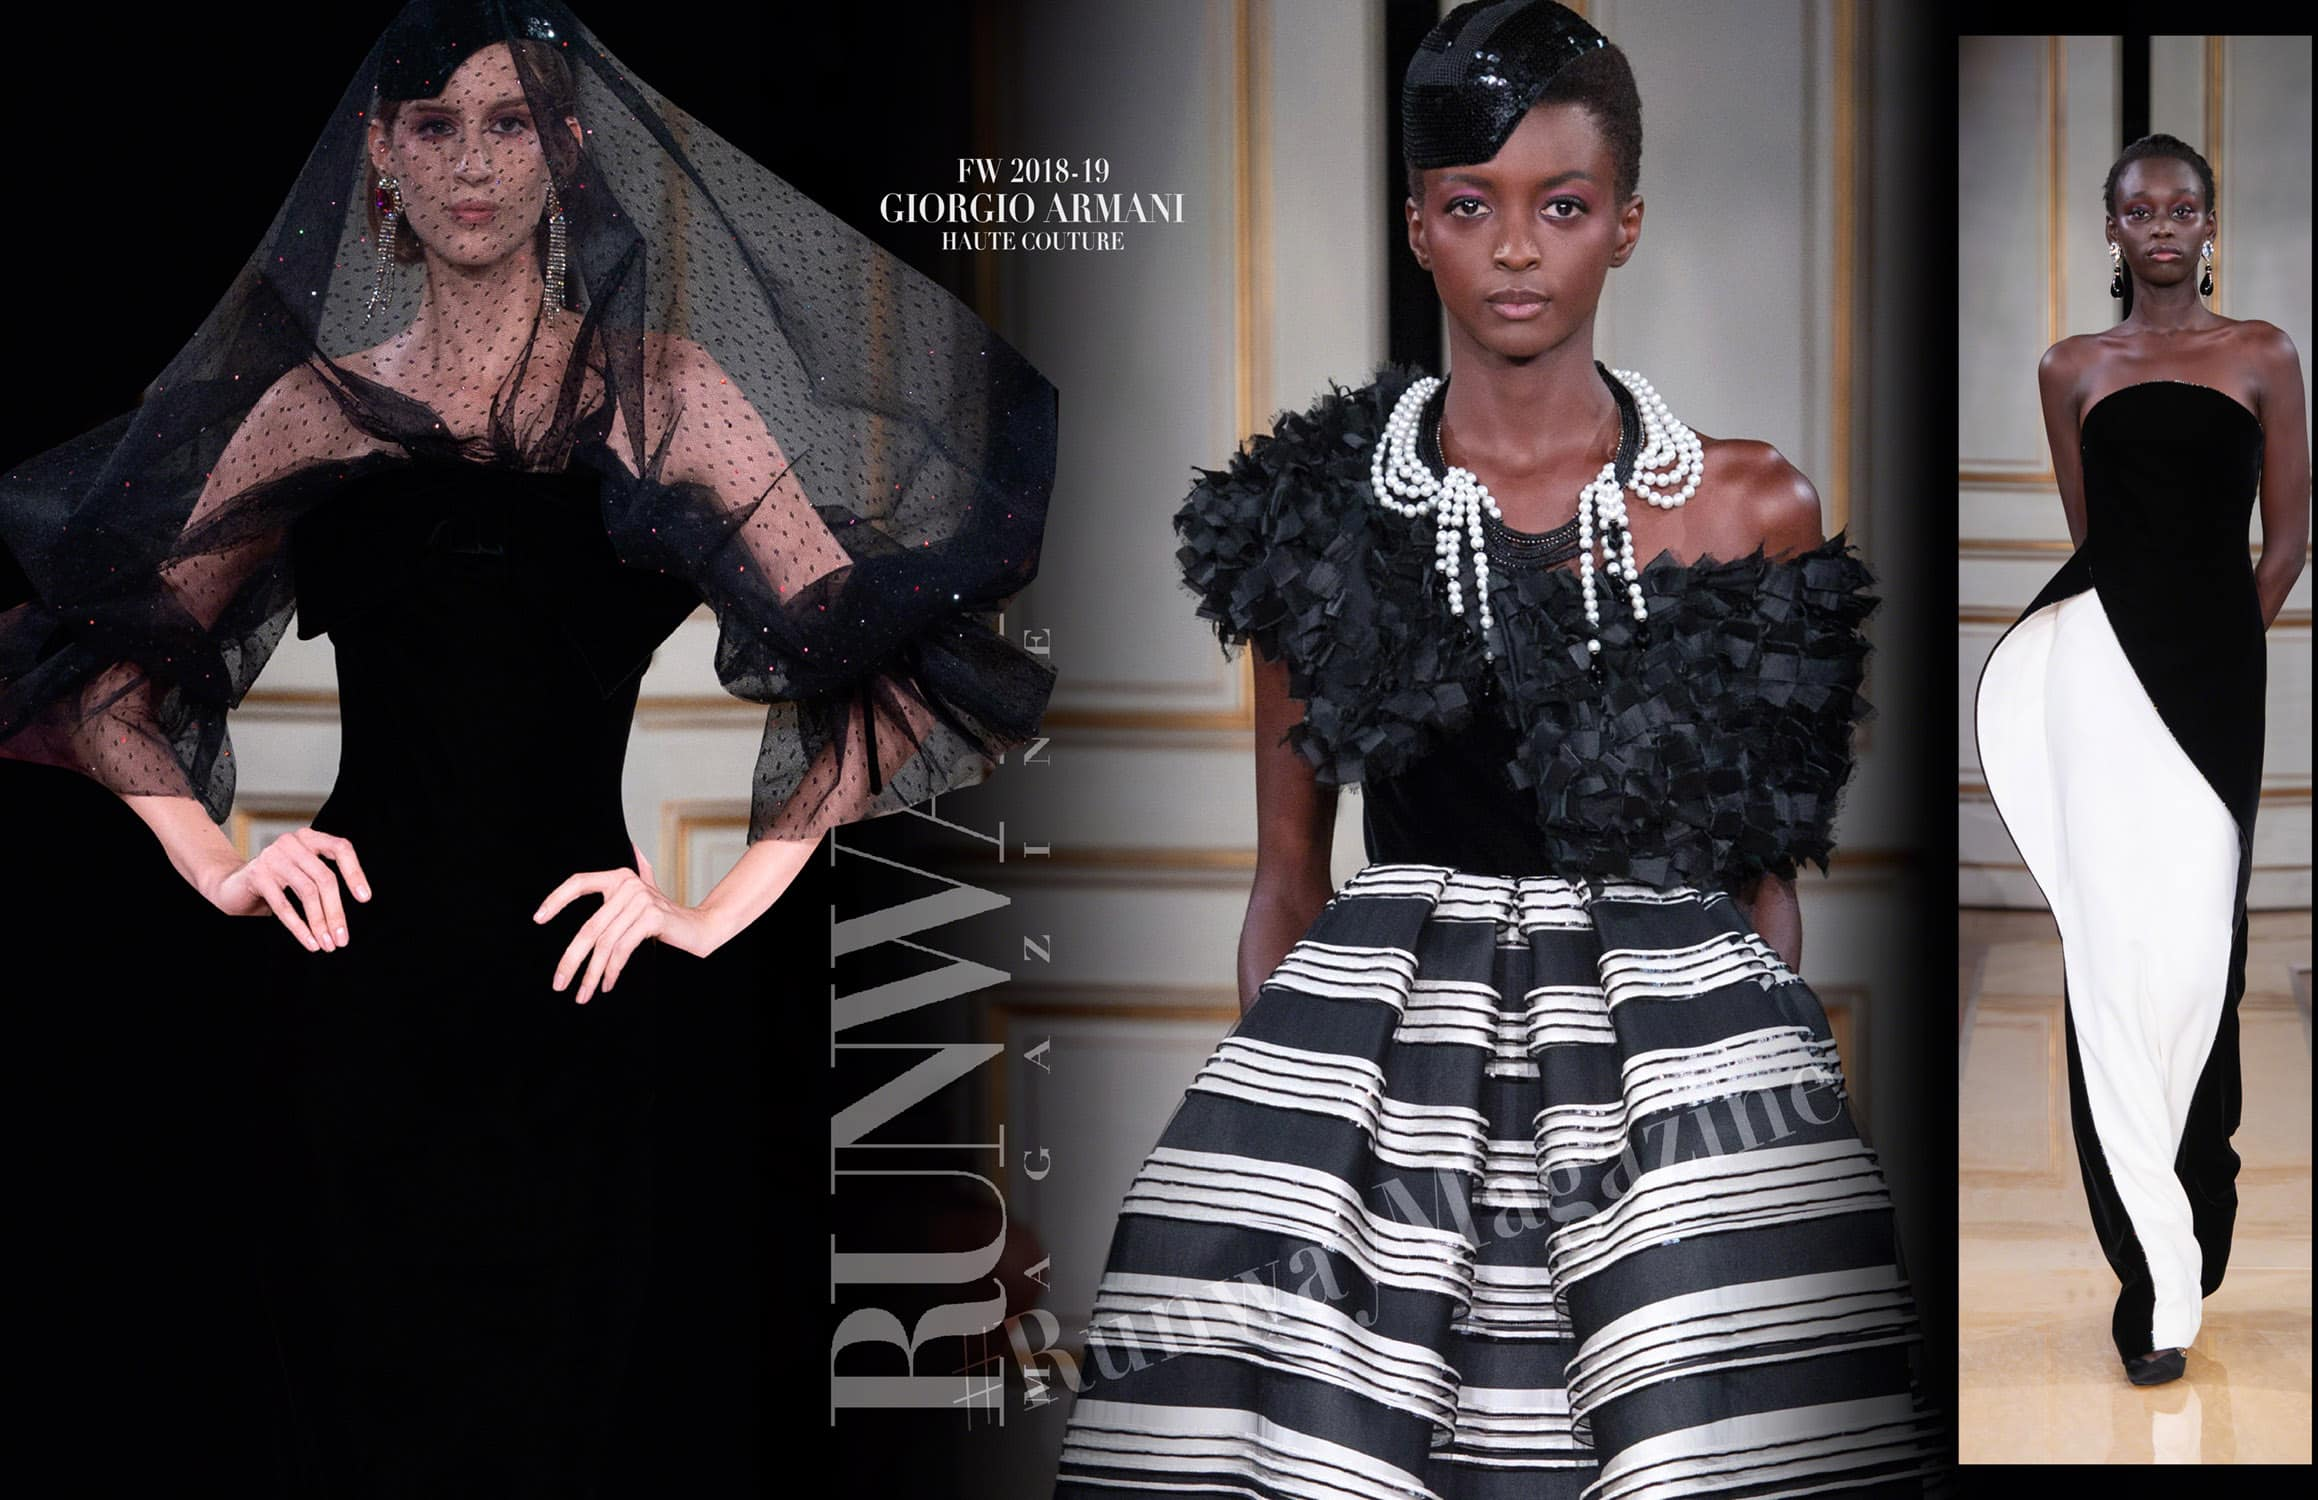 Giorgio Armani Haute Couture Fall-Winter 2018-19 Paris Fashion Week by RUNWAY MAGAZINE